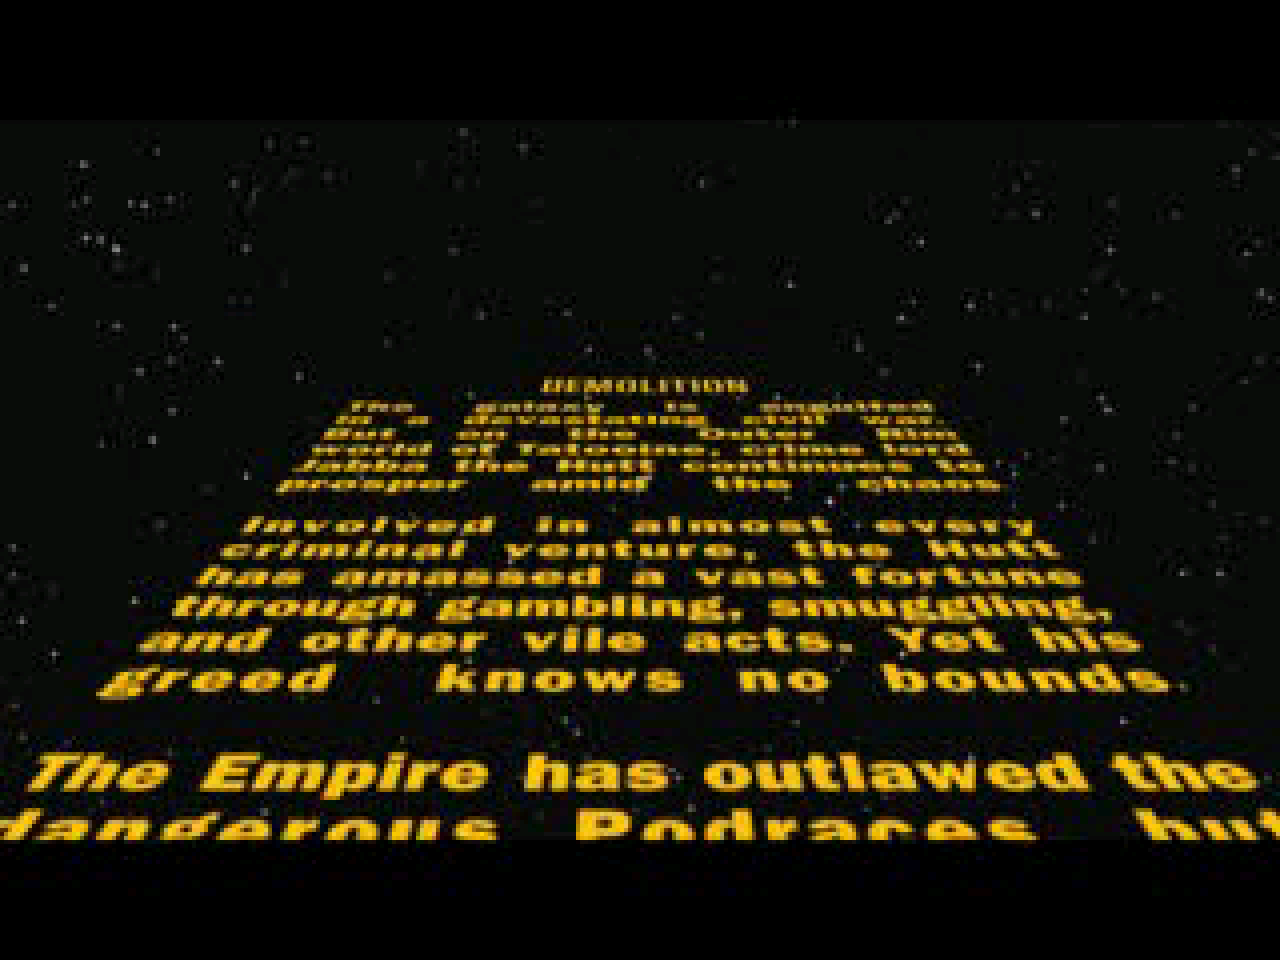 https://s3.eu-west-3.amazonaws.com/games.anthony-dessalles.com/Star Wars Demolition PS1 2020 - Screenshots/Star Wars Demolition-201125-204727.png